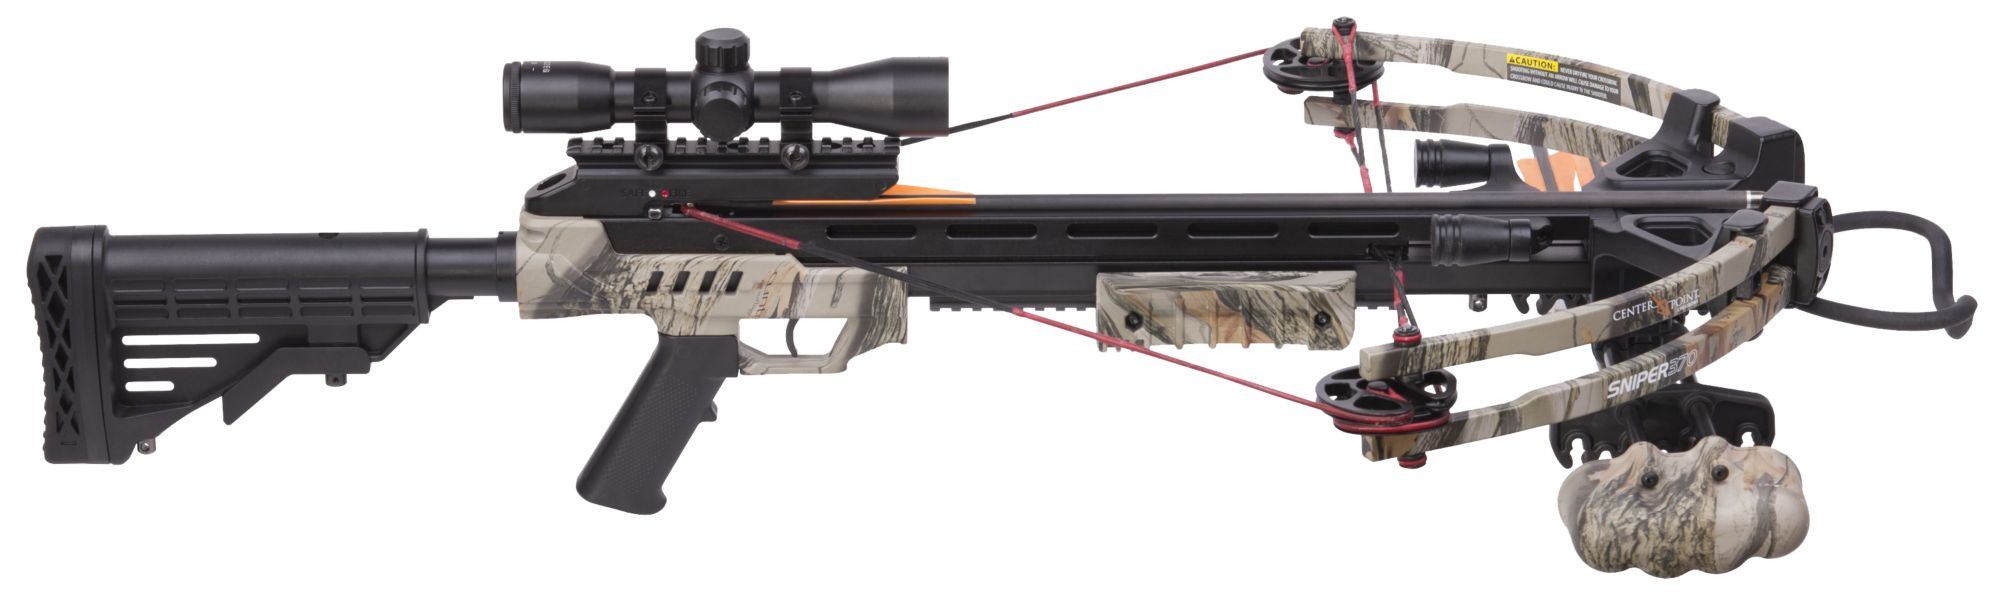 CenterPoint Sniper 370 Crossbow Package - 370 fps, Size: One size thumbnail